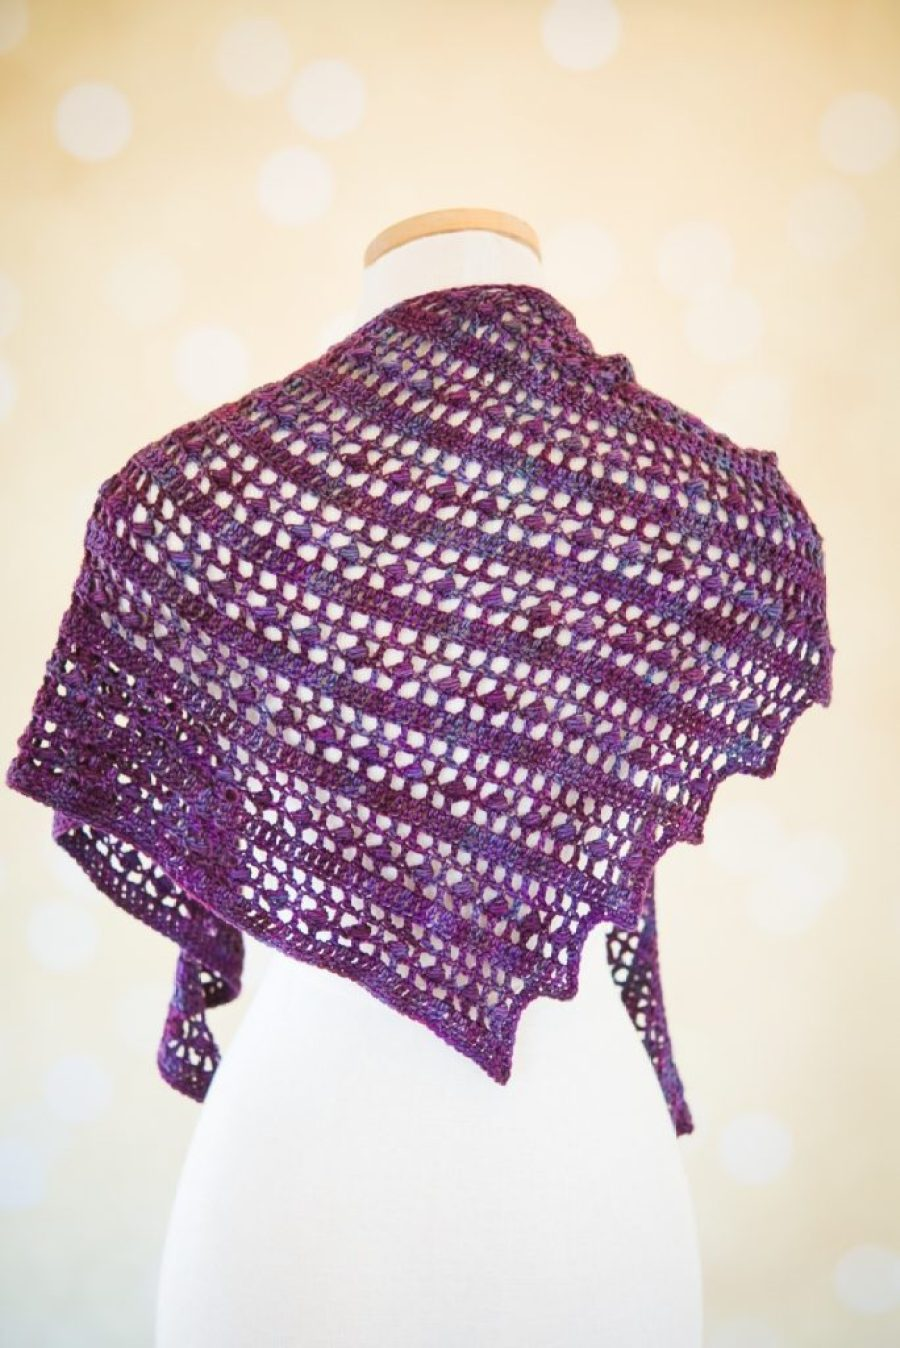 Solna Shawl, a paid crochet pattern by Mary Beth Temple for SweetGeorgia Yarns. Available on Ravelry and the SweetGeorgia website.